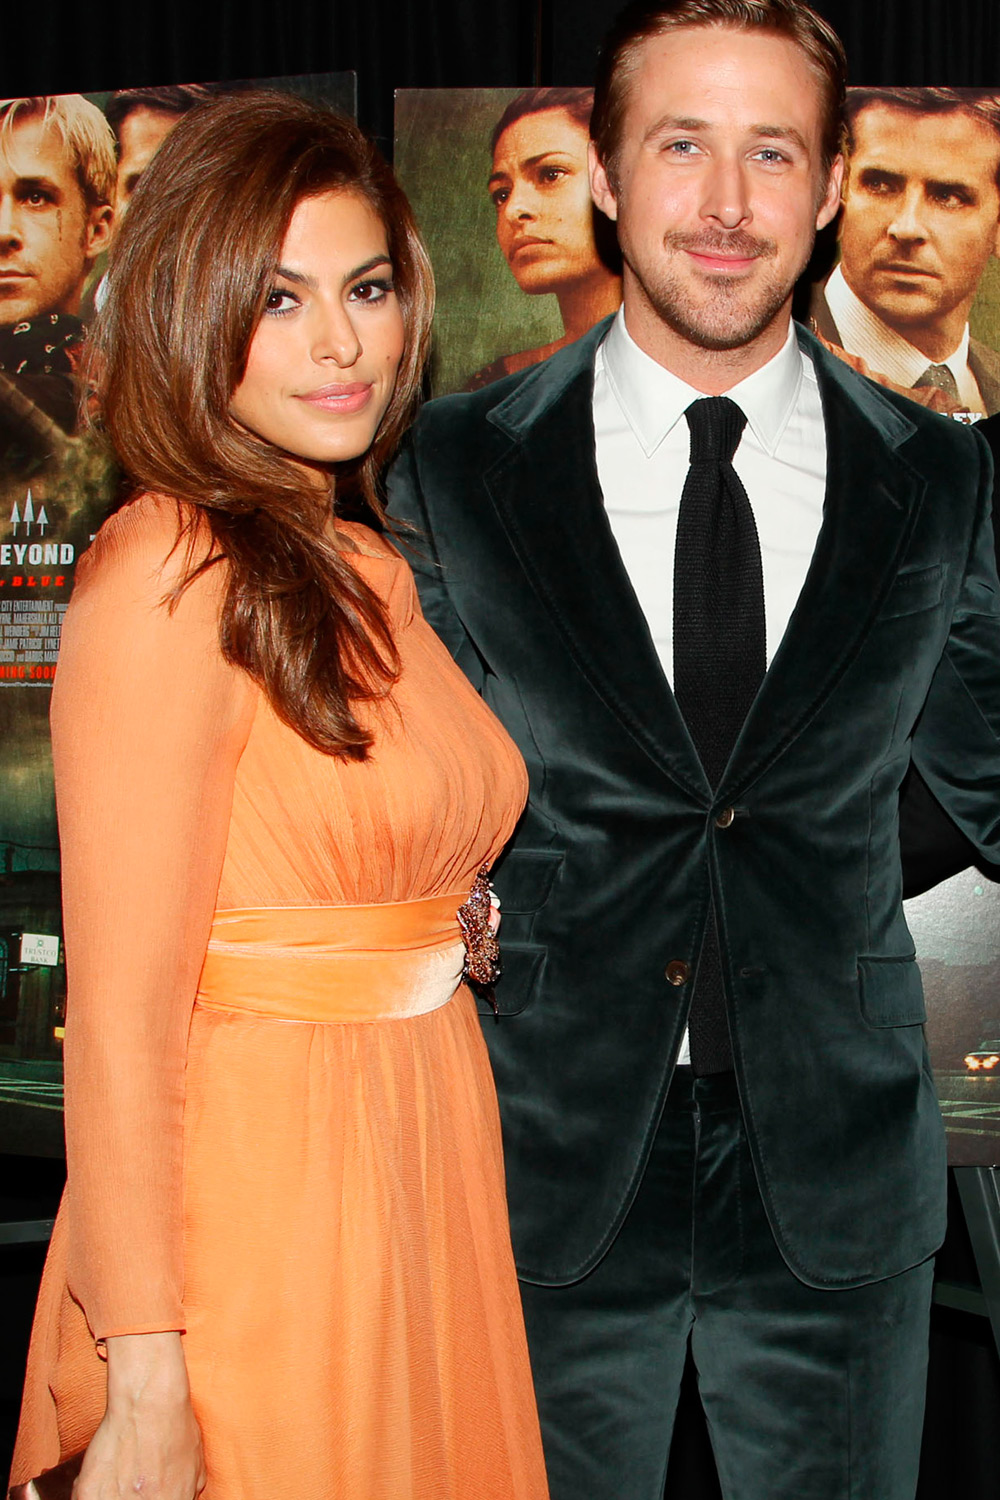 Say Hello To Ryan Gosling & Eva Mendes' Daughter, Amada Lee!